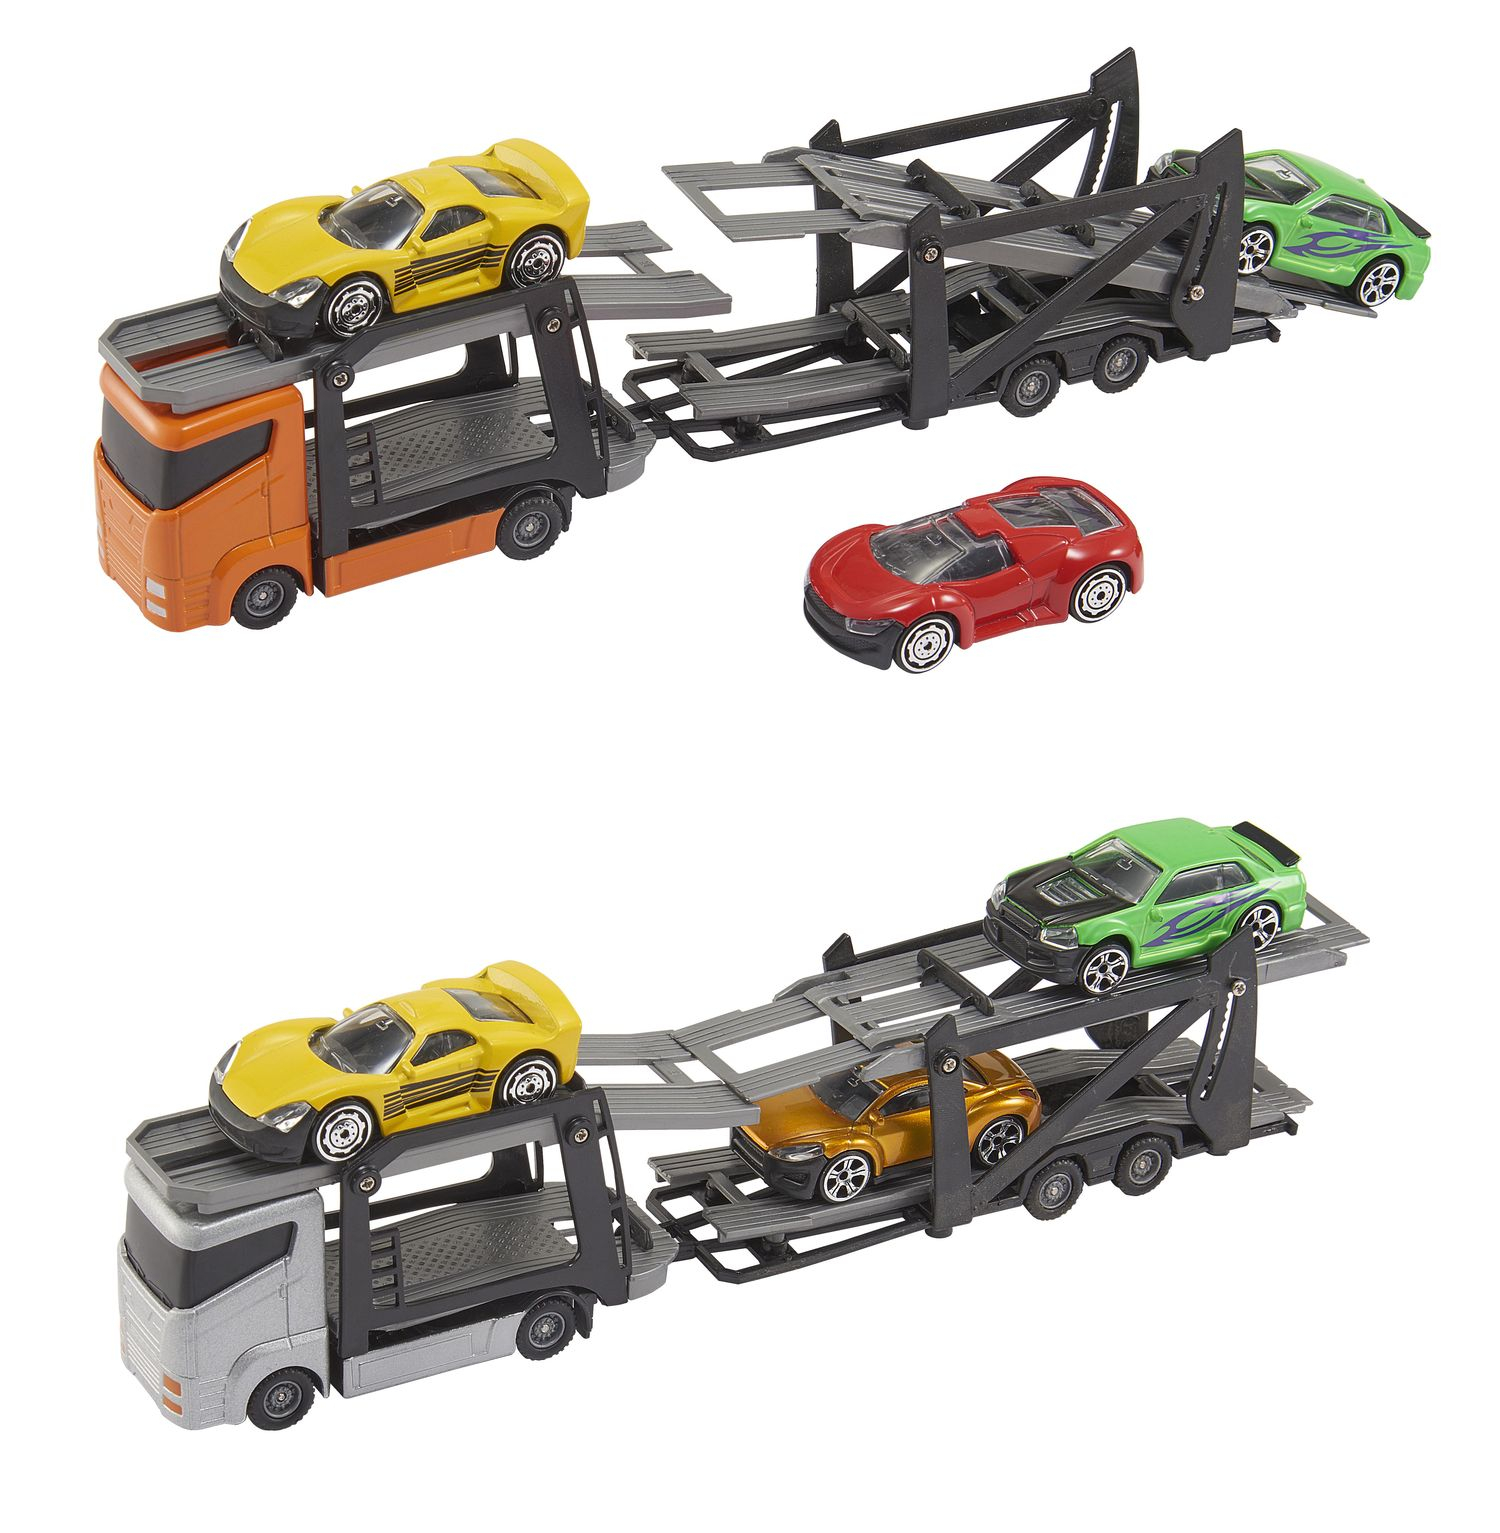 "HTI TEAMSTERZ 3"" Car Transporter with Car"